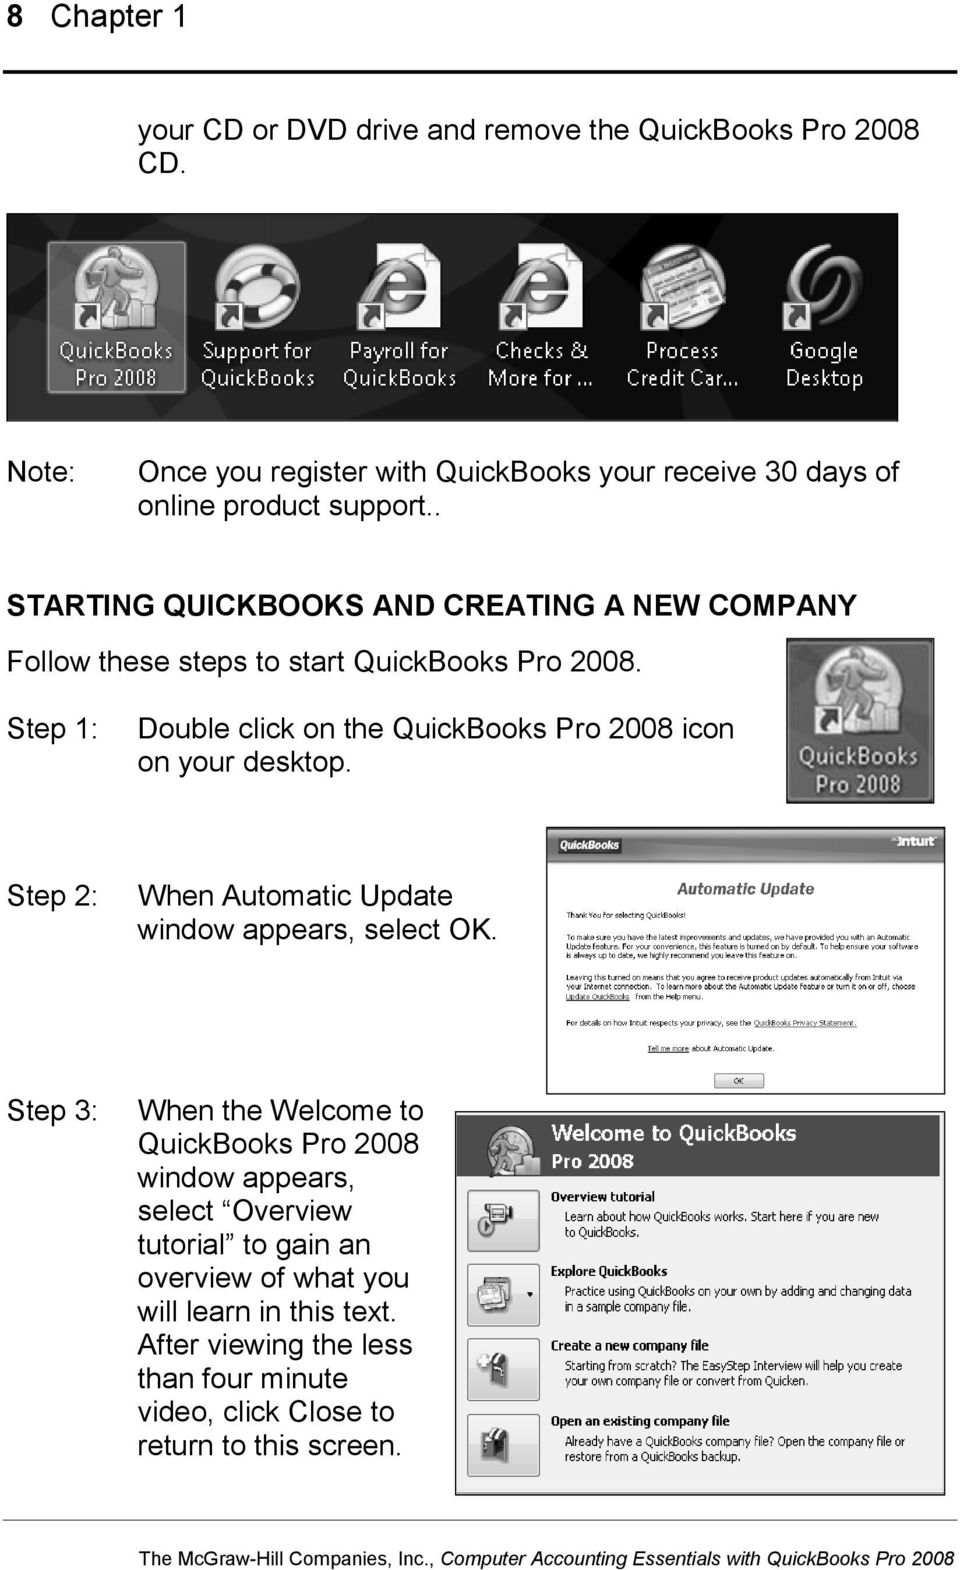 icon on your desktop Step 2: When Automatic Update window appears, select OK Step 3: When the Welcome to QuickBooks Pro 2008 window appears, select